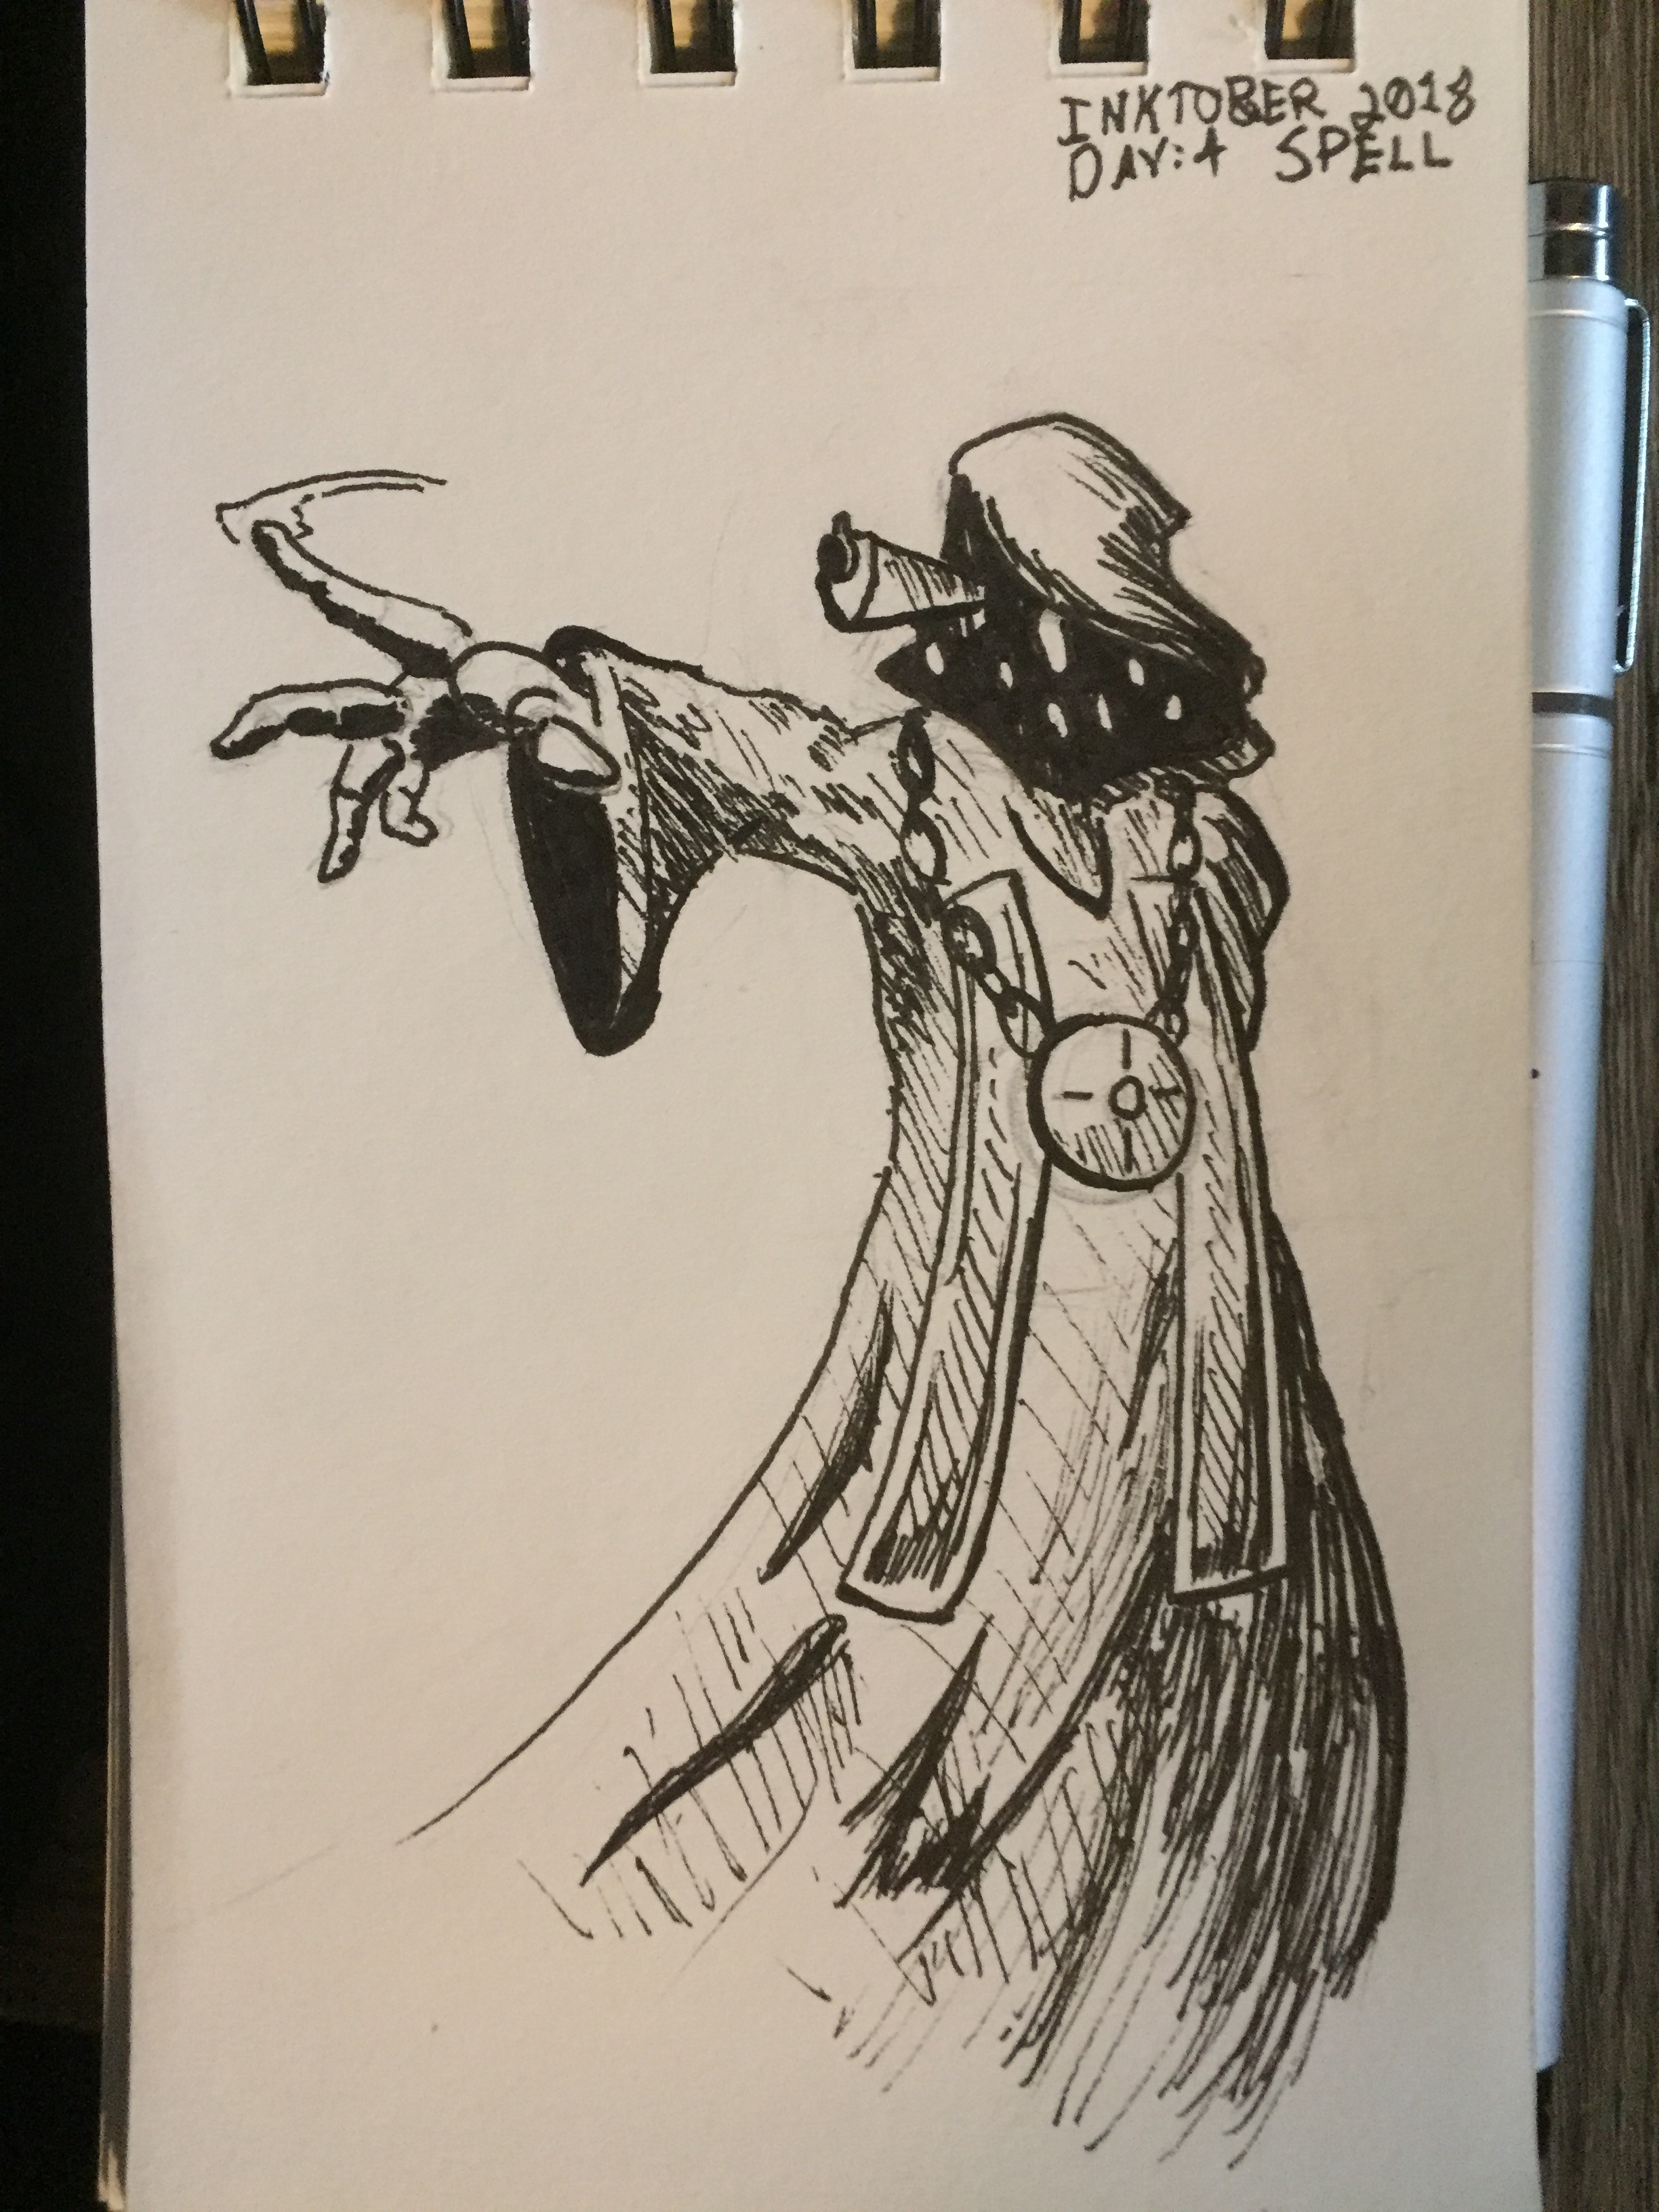 Day 4: Spell (Character is the High Priest from Enter the Gungeon)